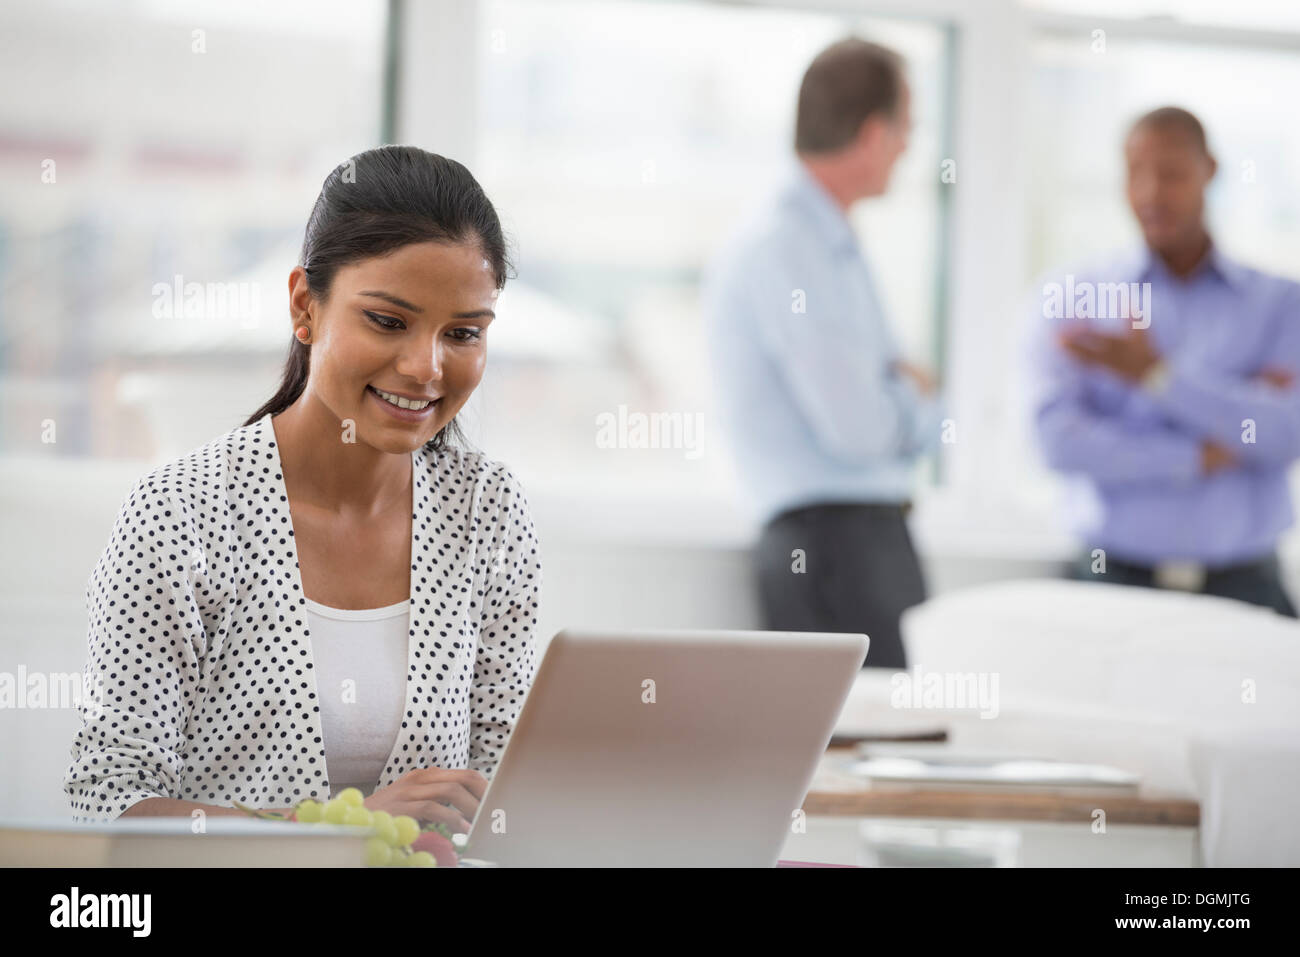 Office life. A woman sitting at a desk using a laptop computer. Two men in the background. - Stock Image